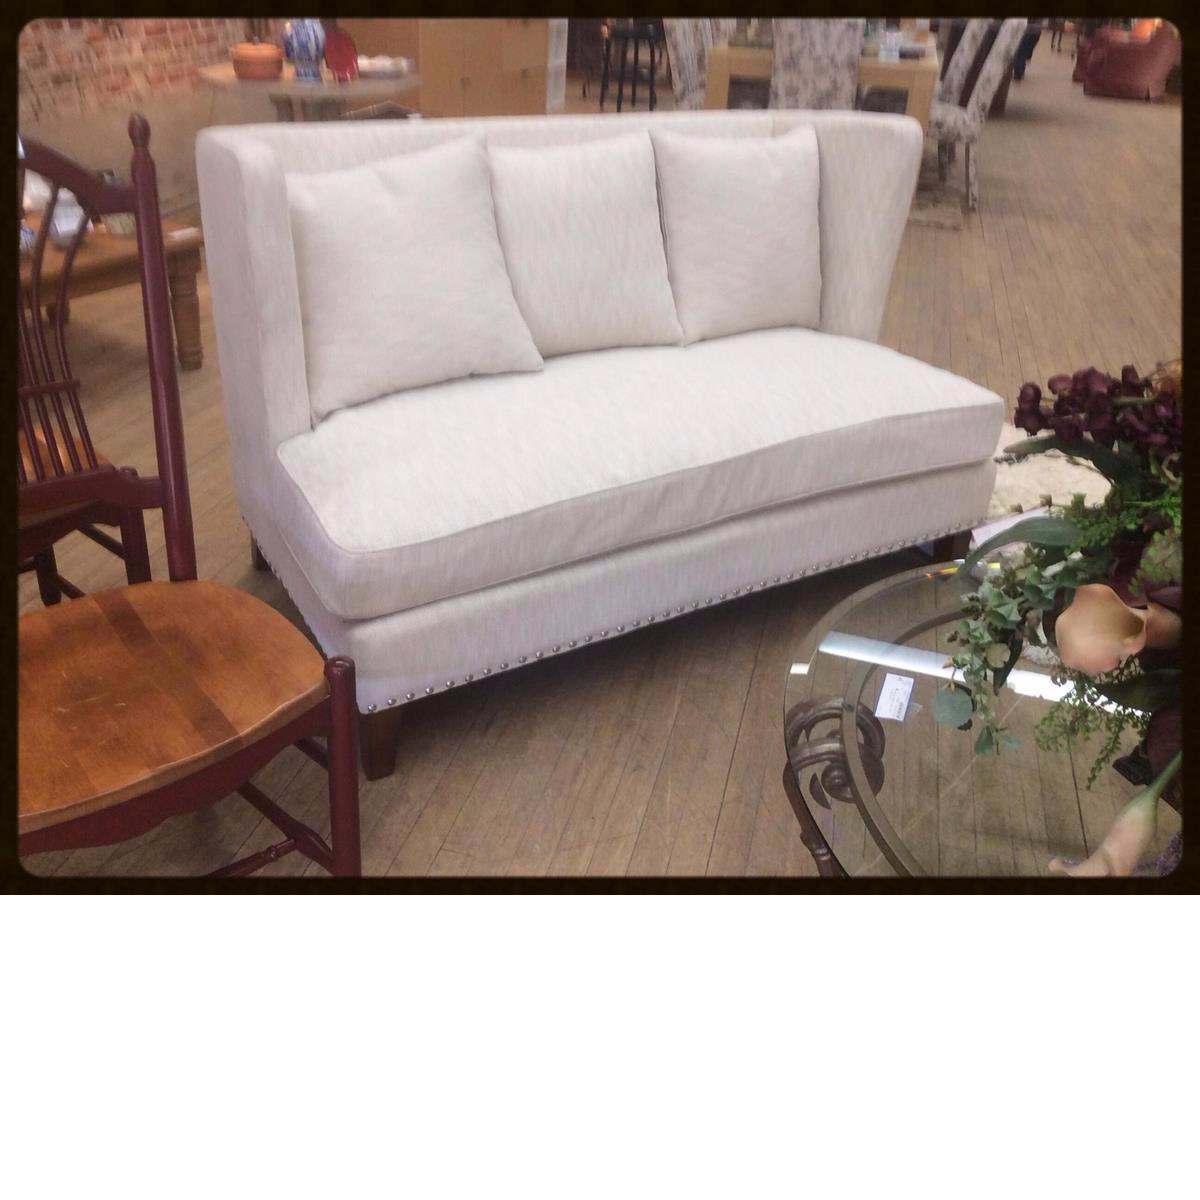 Consigned White Sofa Loveseat Couch at Refashion Consigned Furniture and Clothing